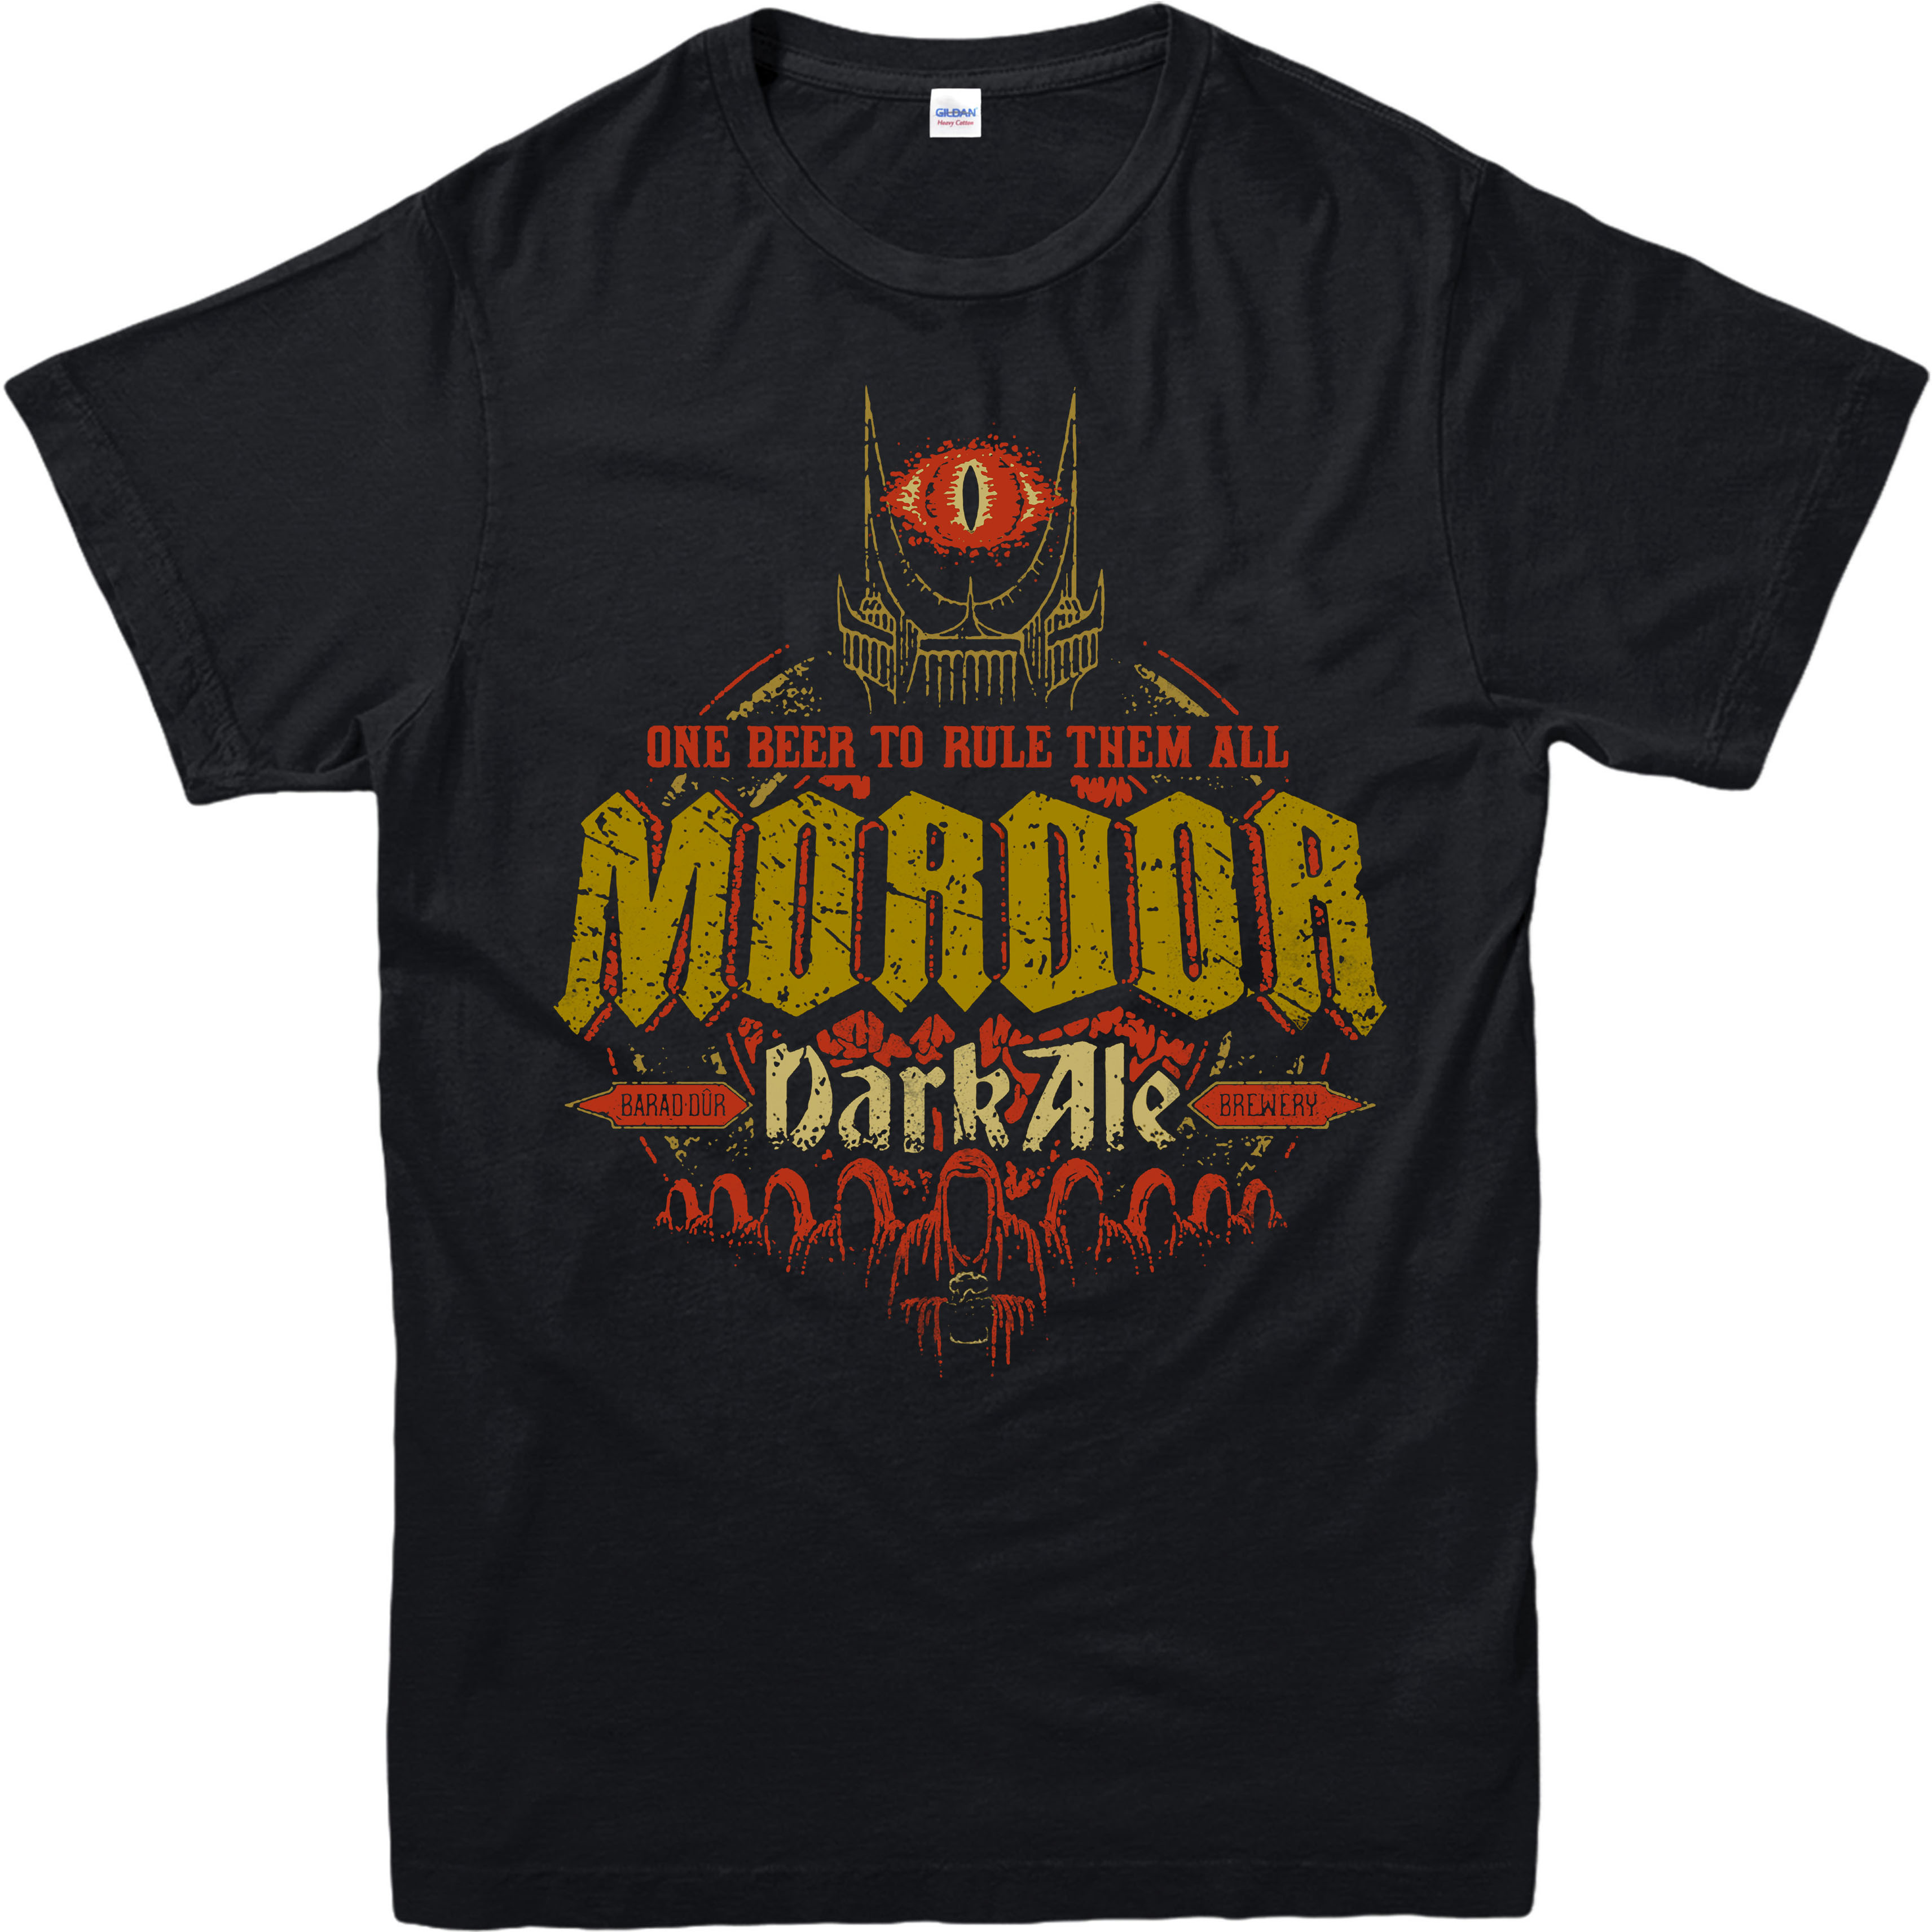 Lord of The Rings   T  -  Shirt  ,Mordor Dark Ale Spoof,Adult and Kids Sizes Cotton Men   T     Shirts   Classical Top Tee Basic Models